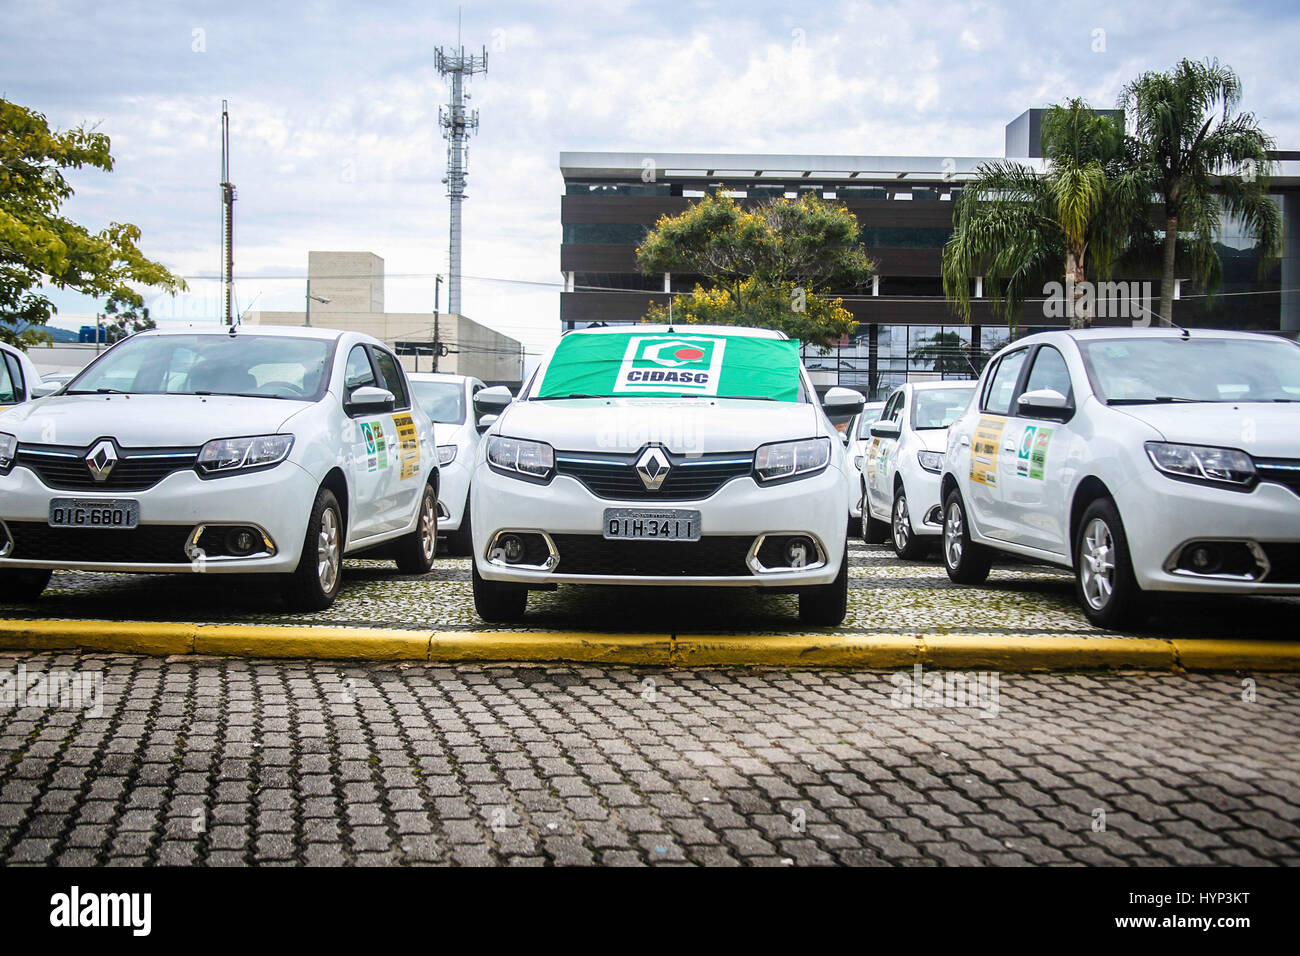 FLORIAN'POLIS, SC - 06.04.2017: DELIVERY OF 41 NEW VEHICLES CIDASC - © River Ministries of Agriculture, - Stock Image